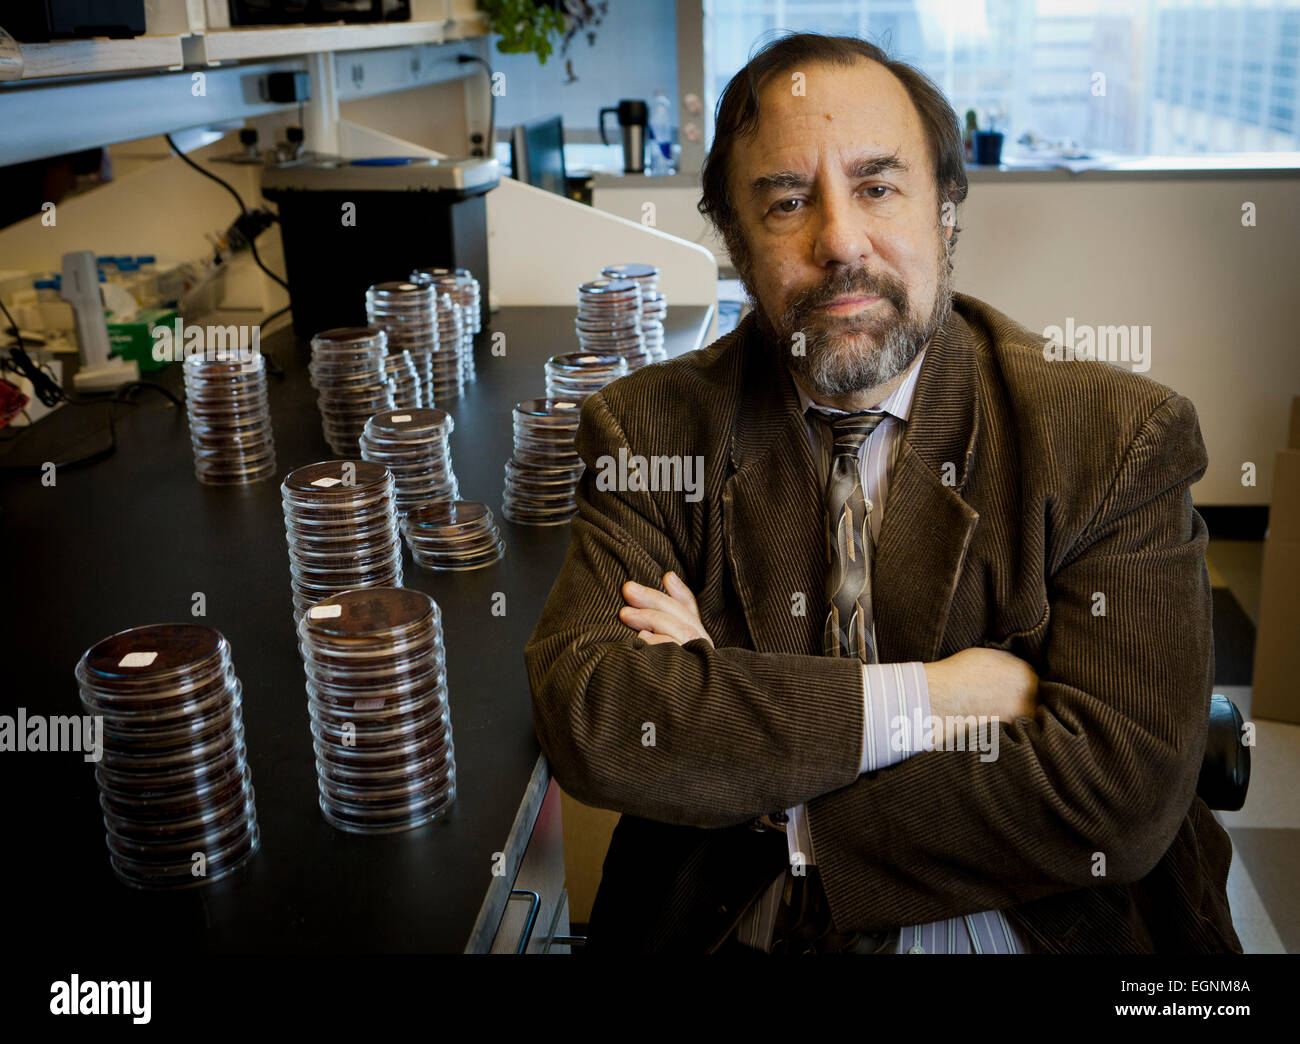 Scientist and professor Dr. Robert S. Daum at the University of Chicago. - Stock Image